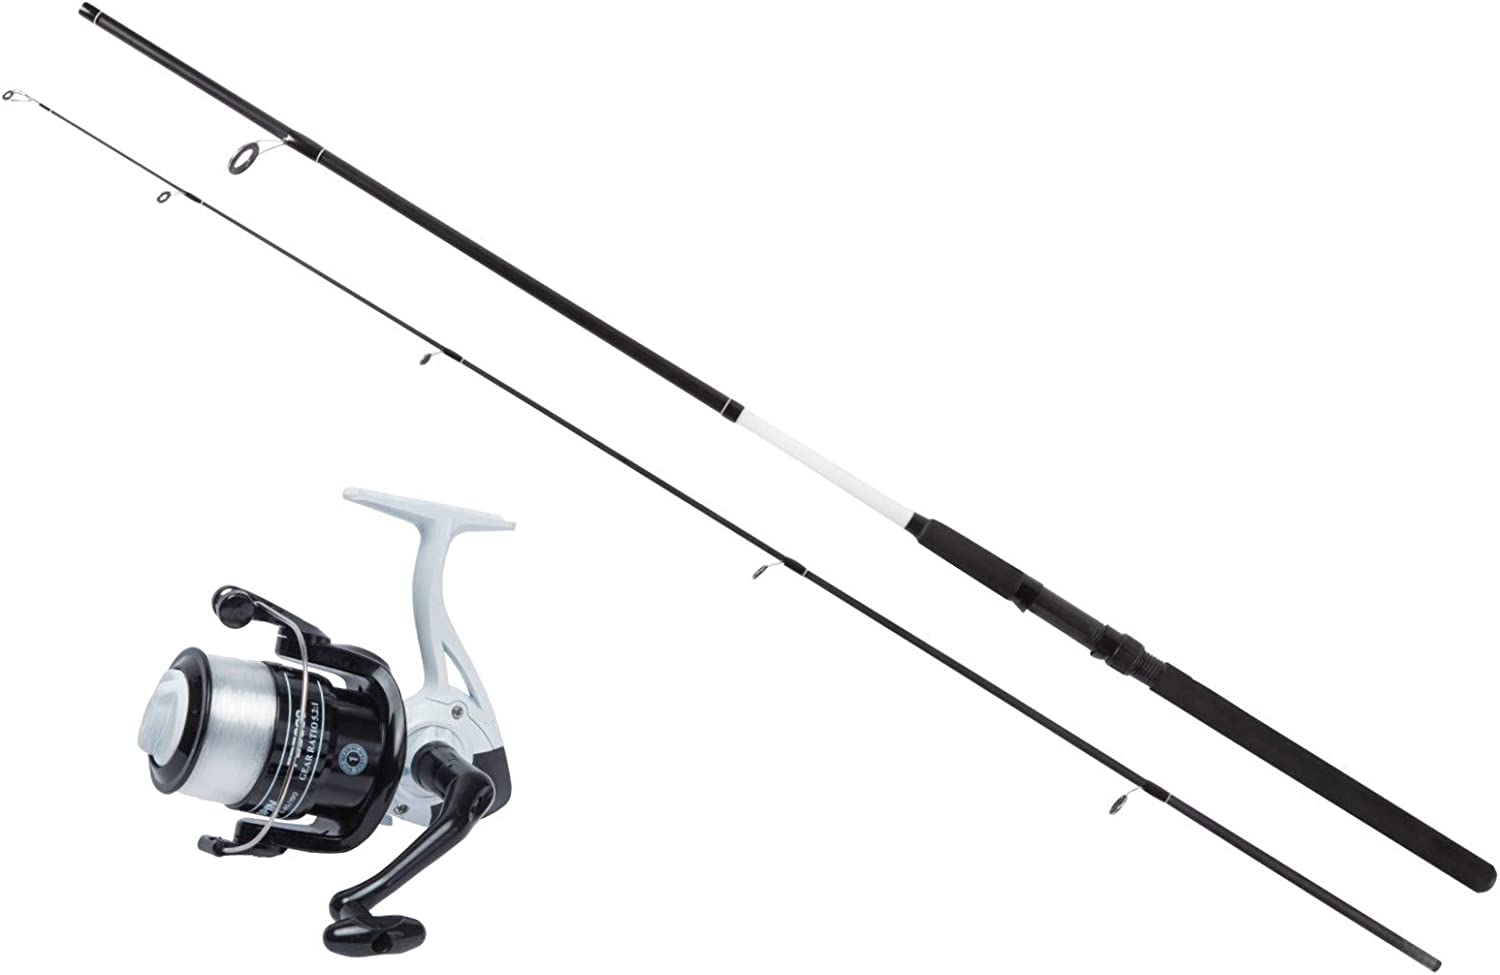 Available in 6-1.8m, 7-2.1m and 8-2.4m Fishzone DOMINO series ROD /& REEL SPINNING COMBO Rated 20-40g Medium Action. RIVER LAKE SEA Outstanding Value UK Brand